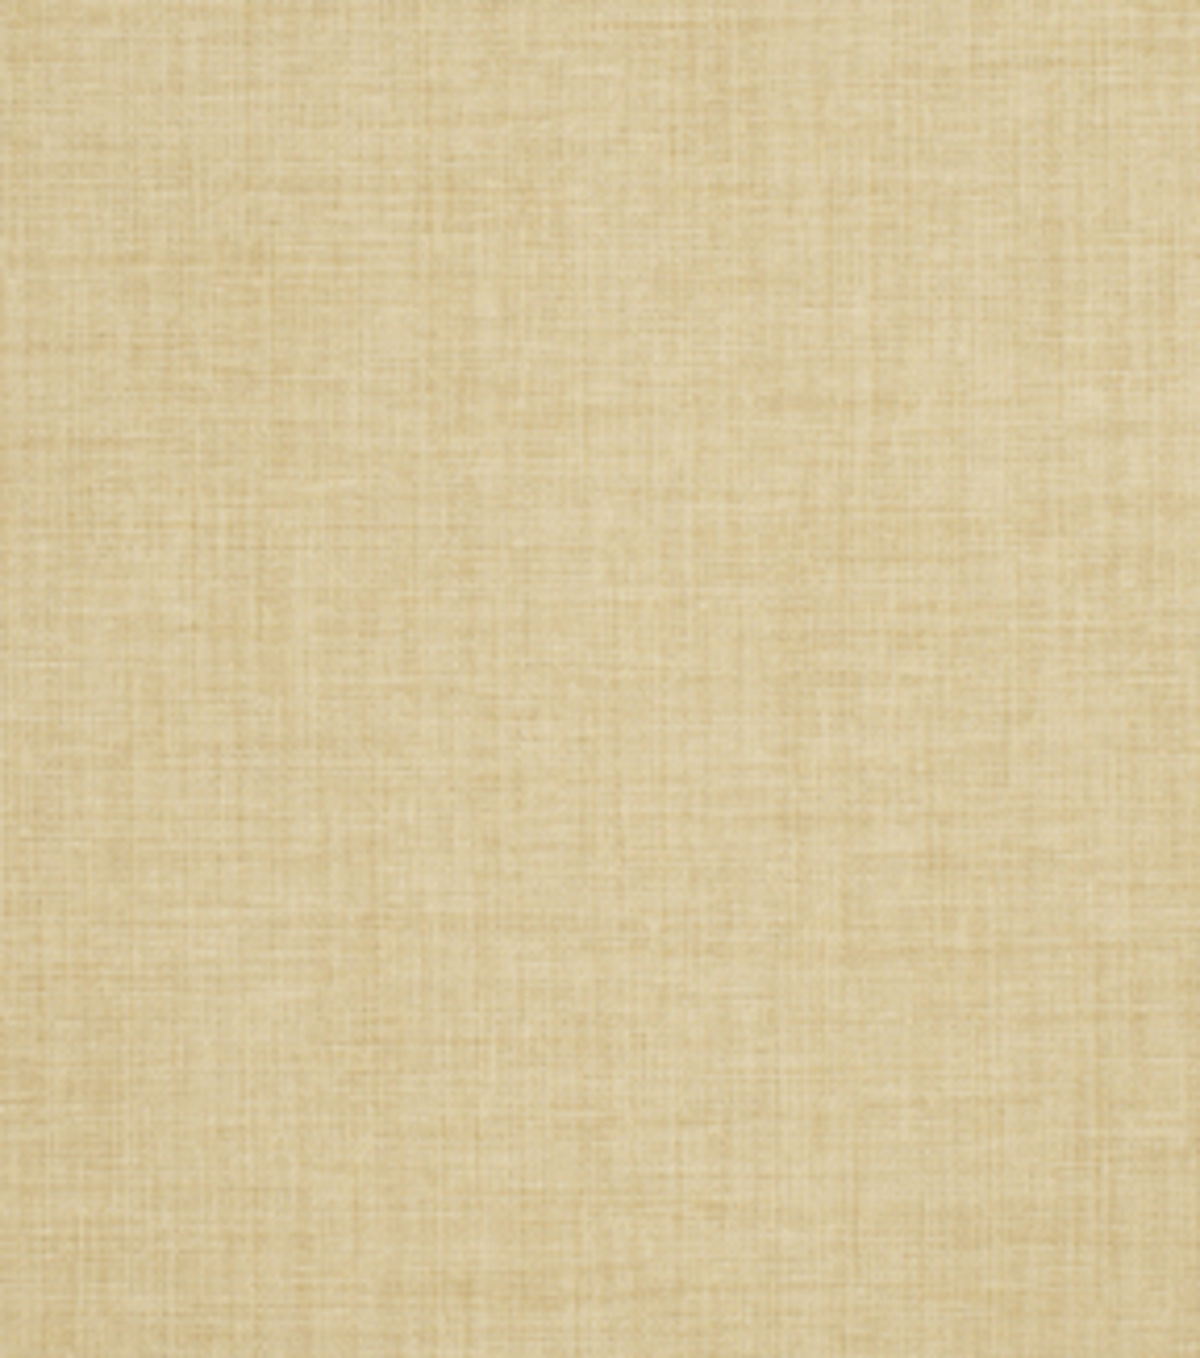 Home Decor 8\u0022x8\u0022 Fabric Swatch-Eaton Square Ring Toss Cream